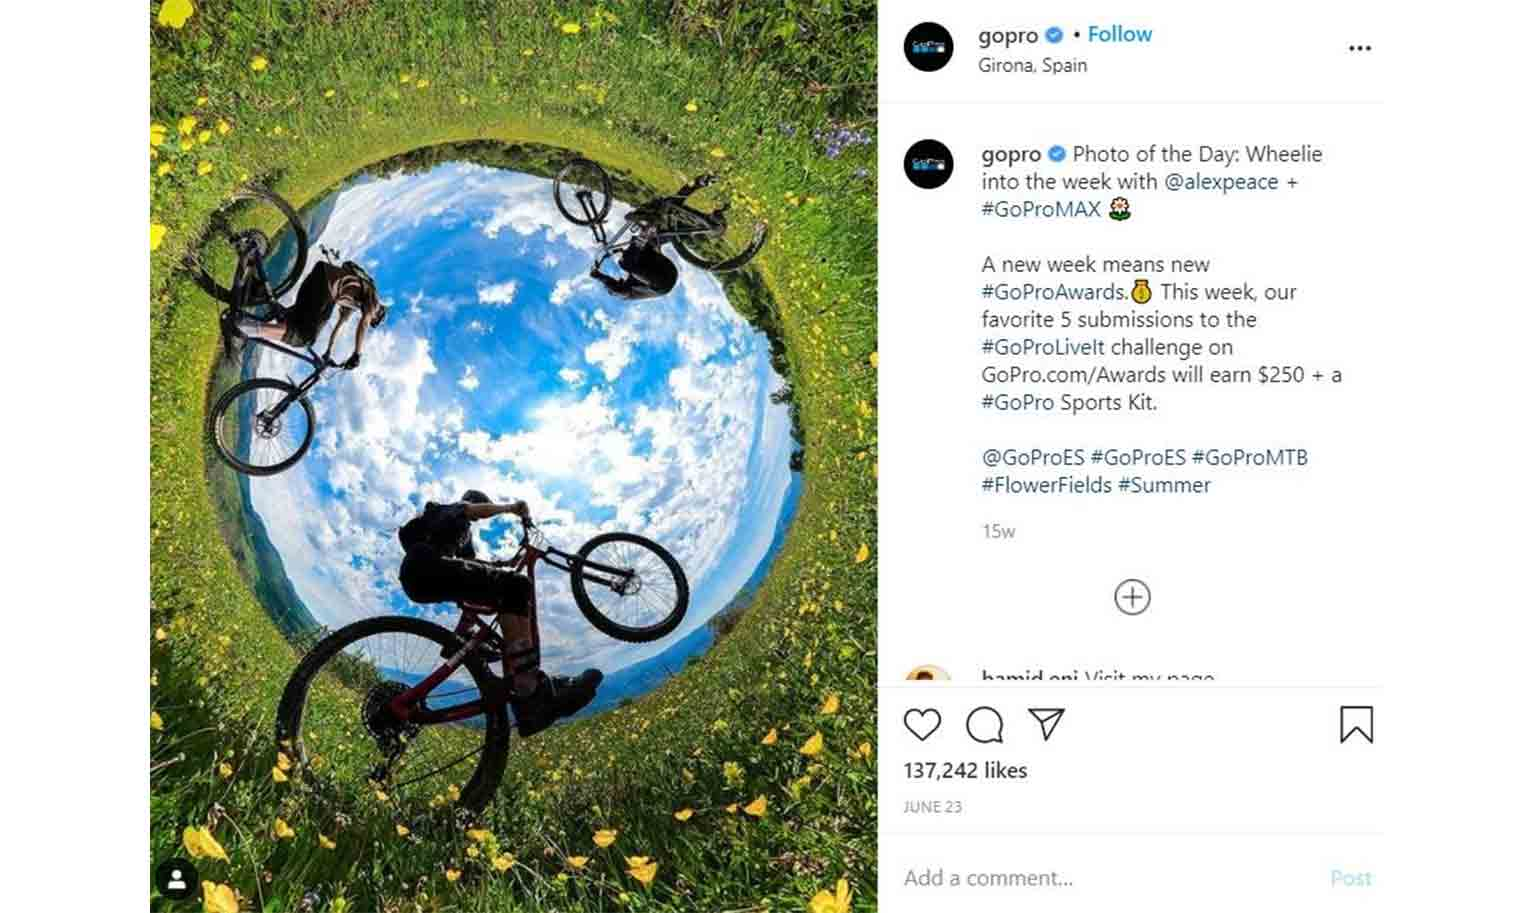 The #GoProLiveIt even challenges creators to share photos of moments that made them feel alive to earn valuable prizes.